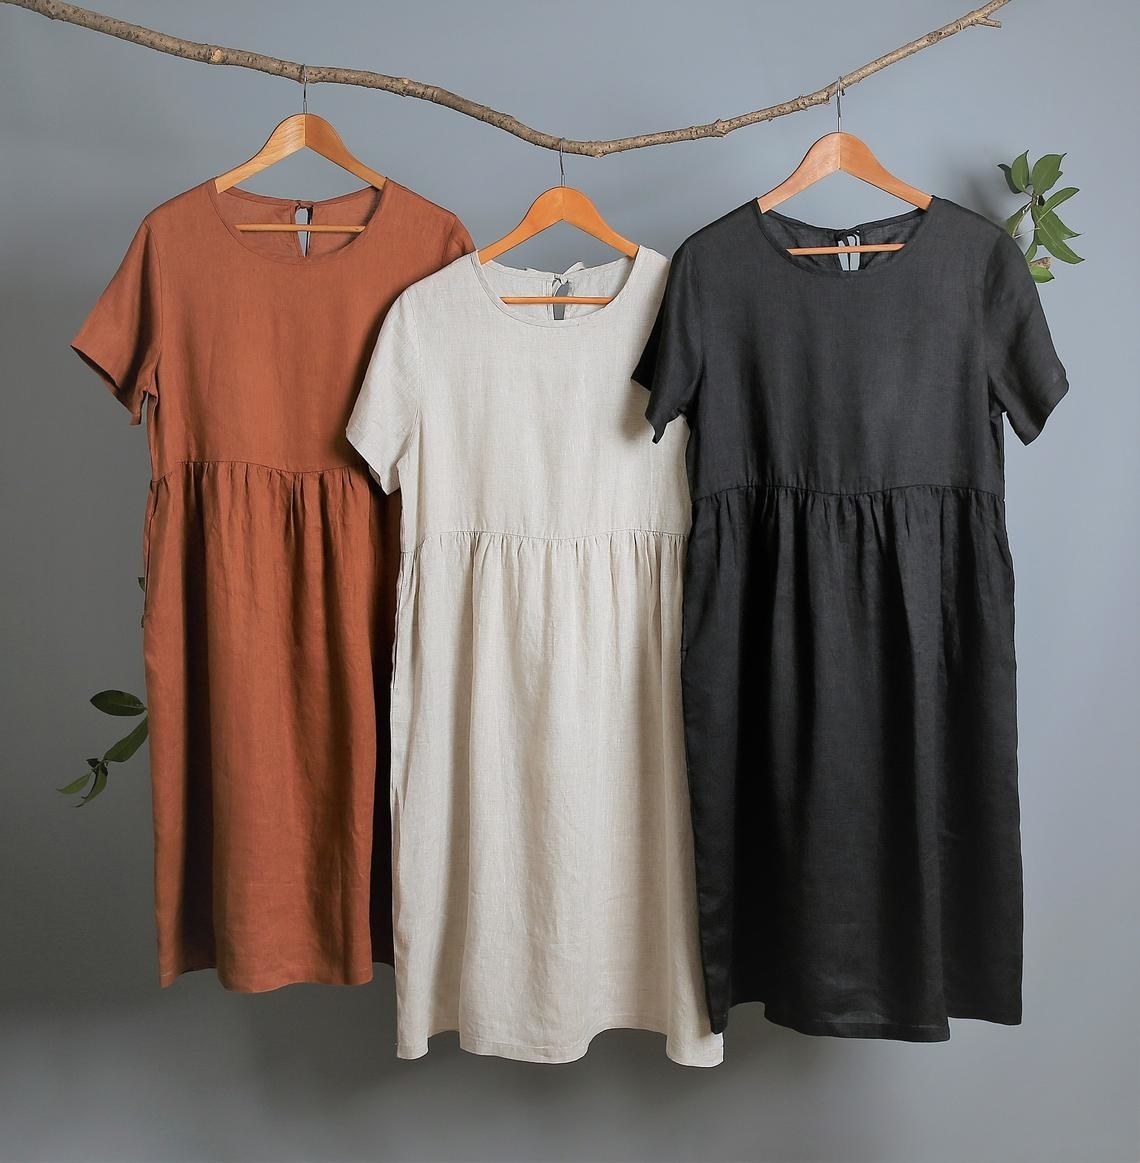 linen t-shirt dresses in rust, light taupe, and black